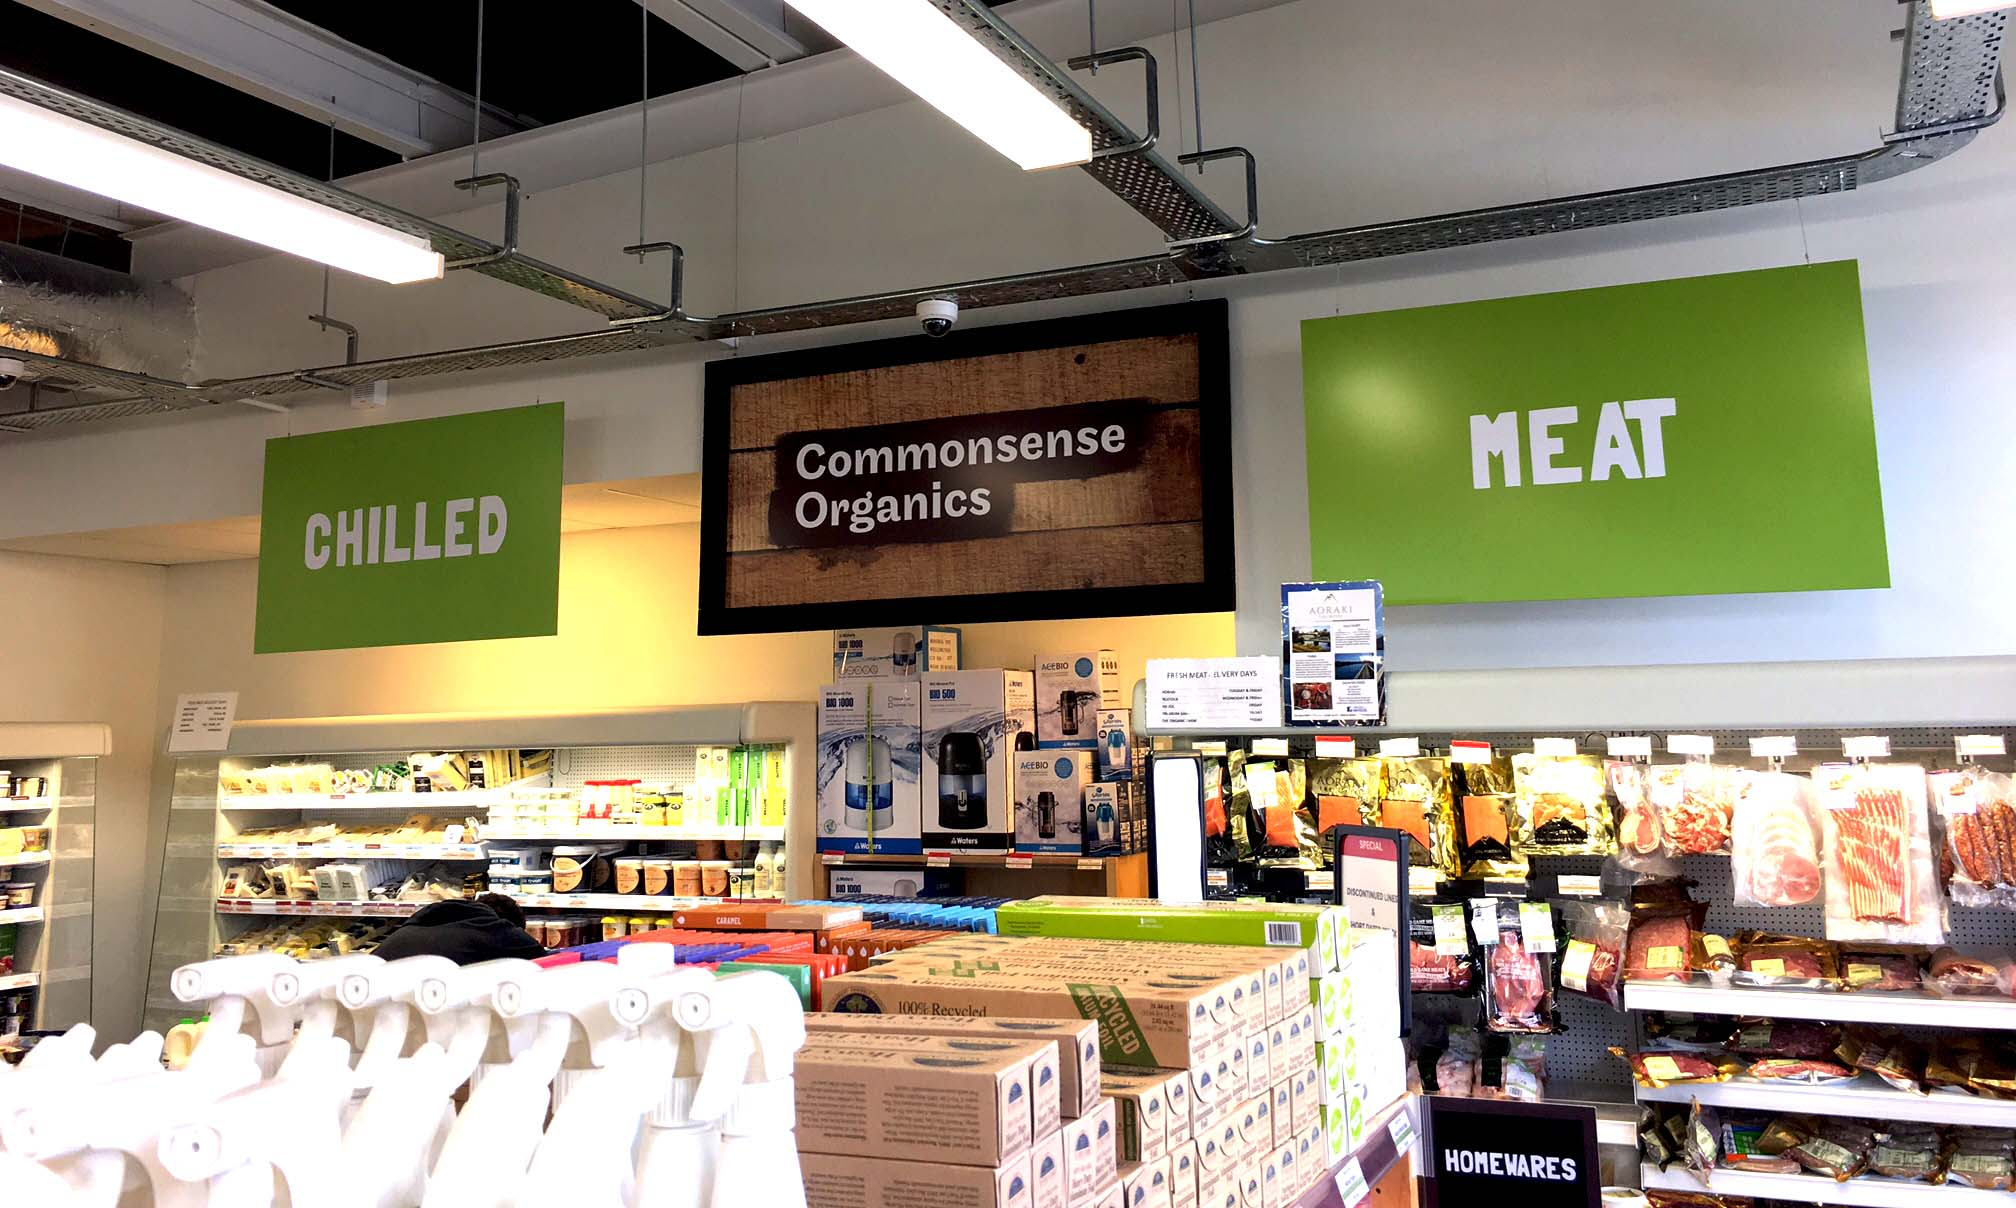 Commonsense Organics interior